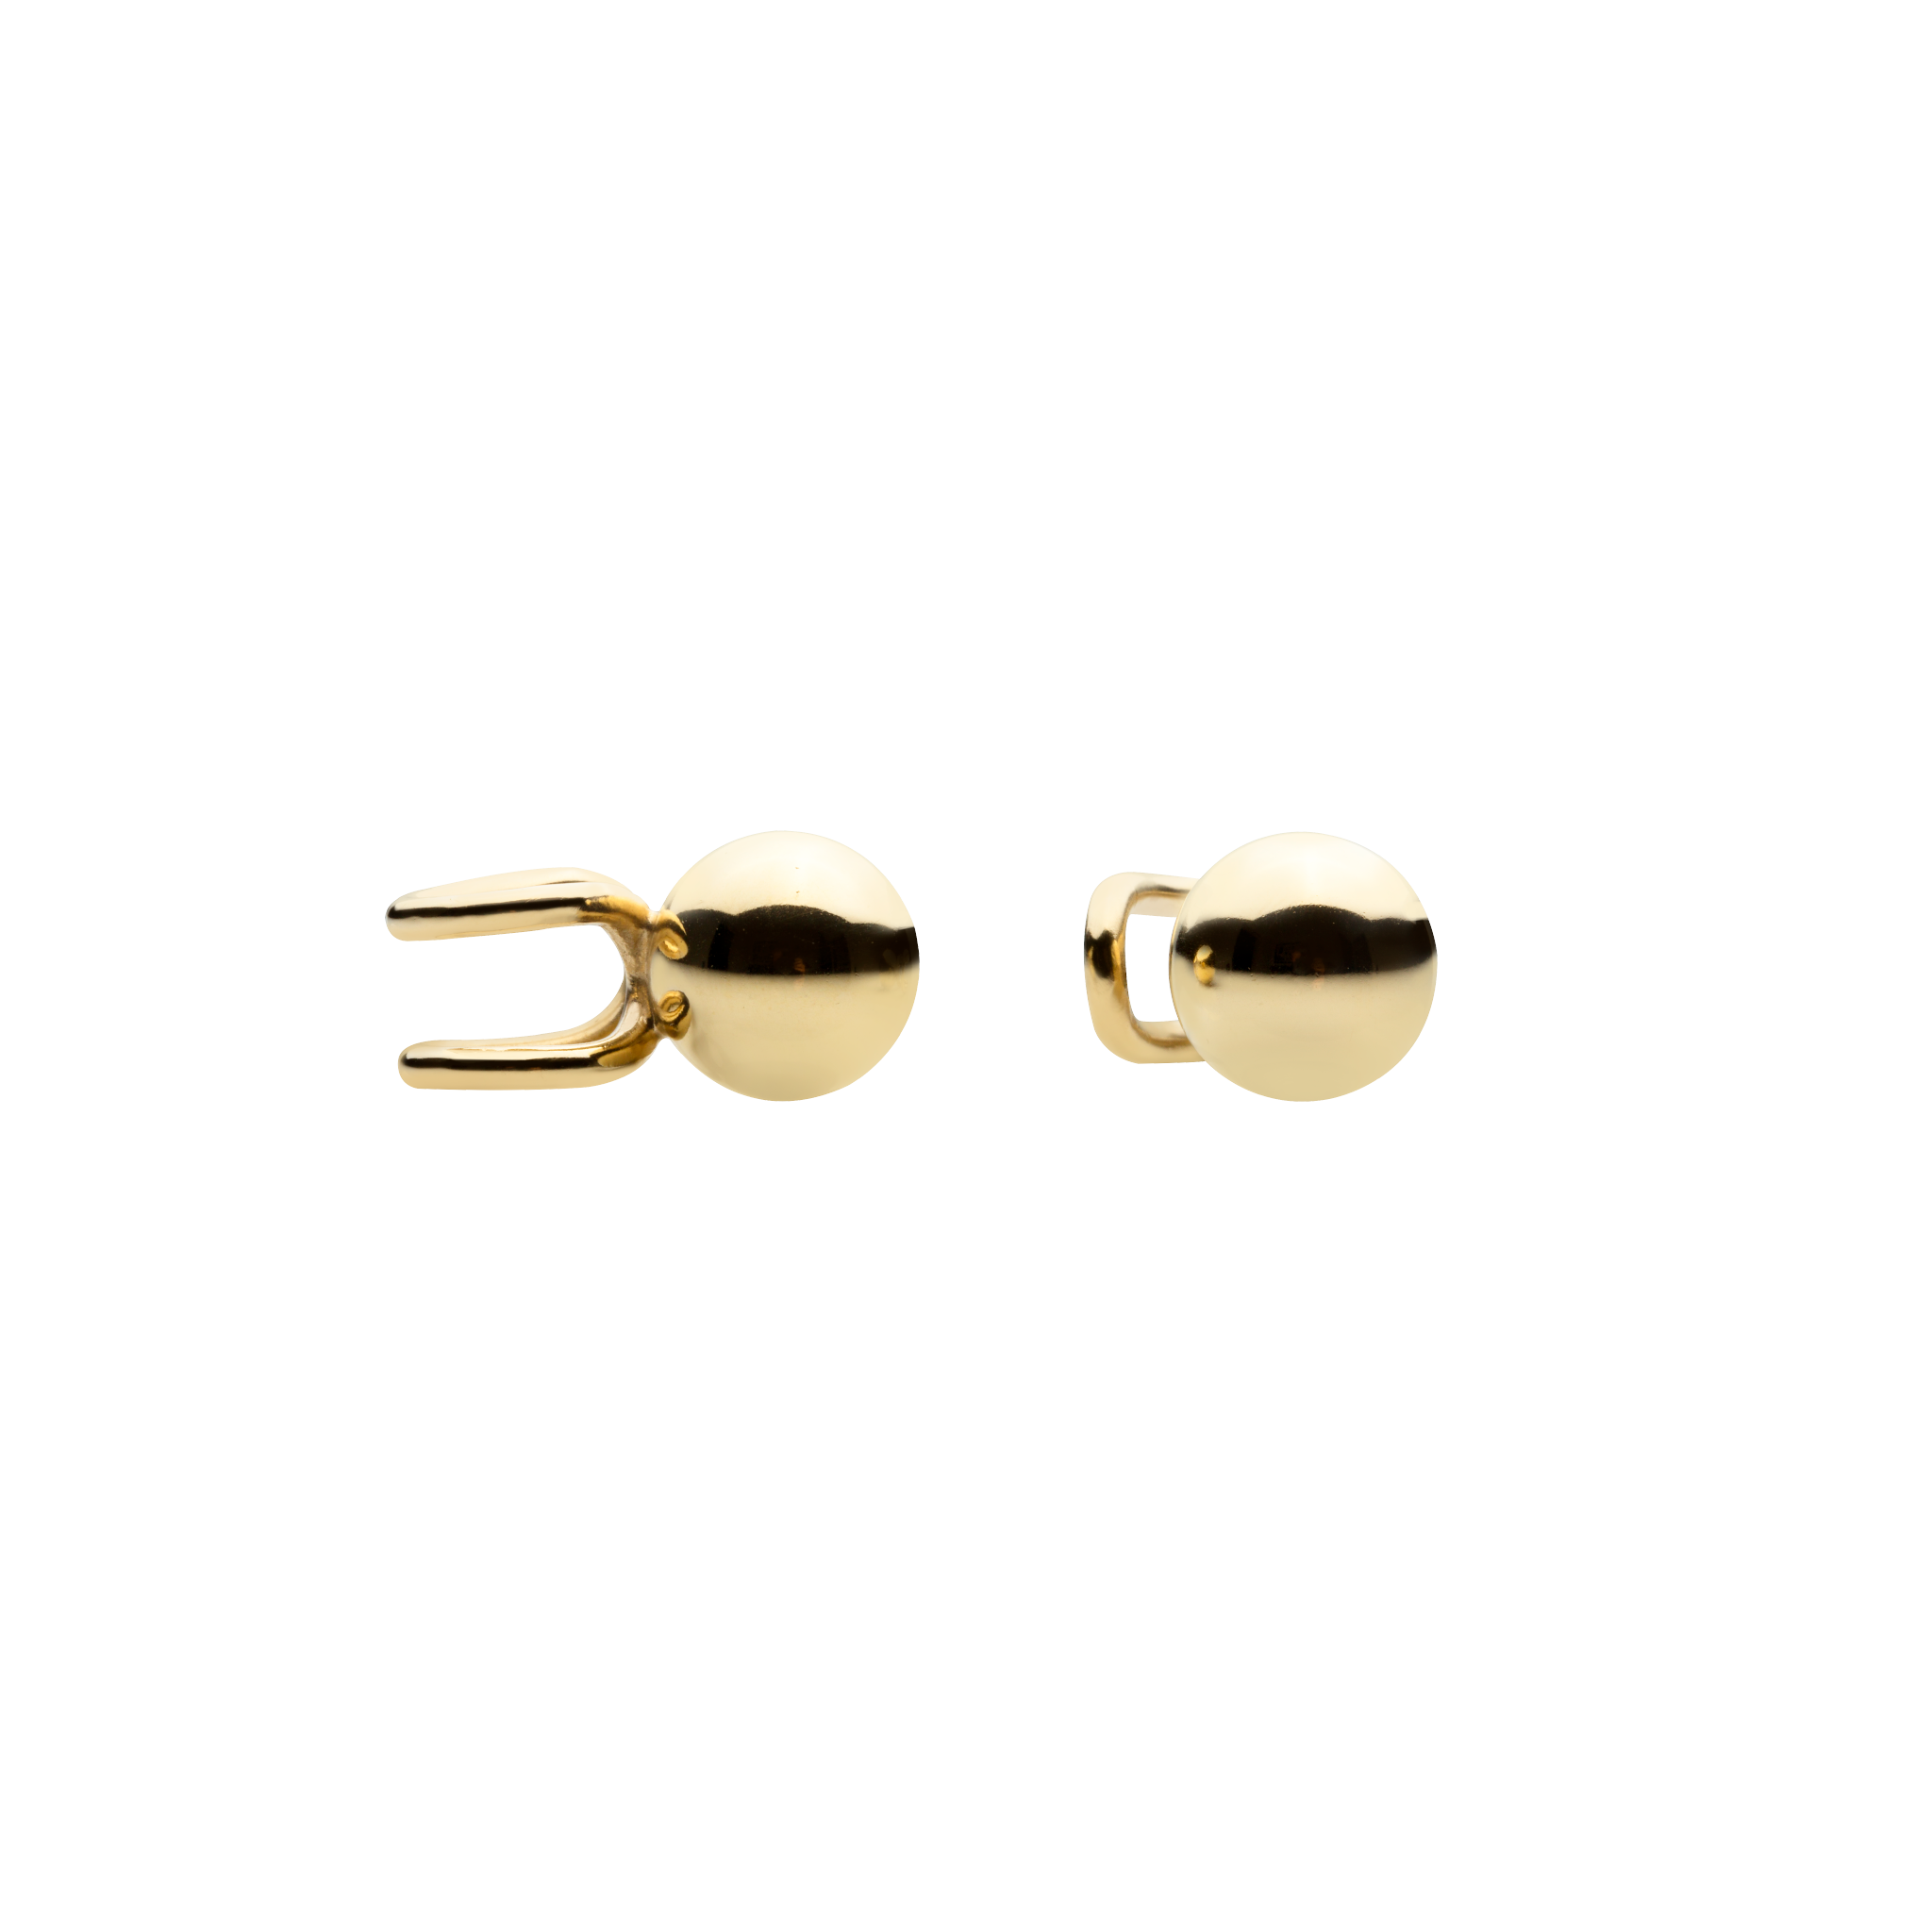 Ball Gold Ear Cuffs